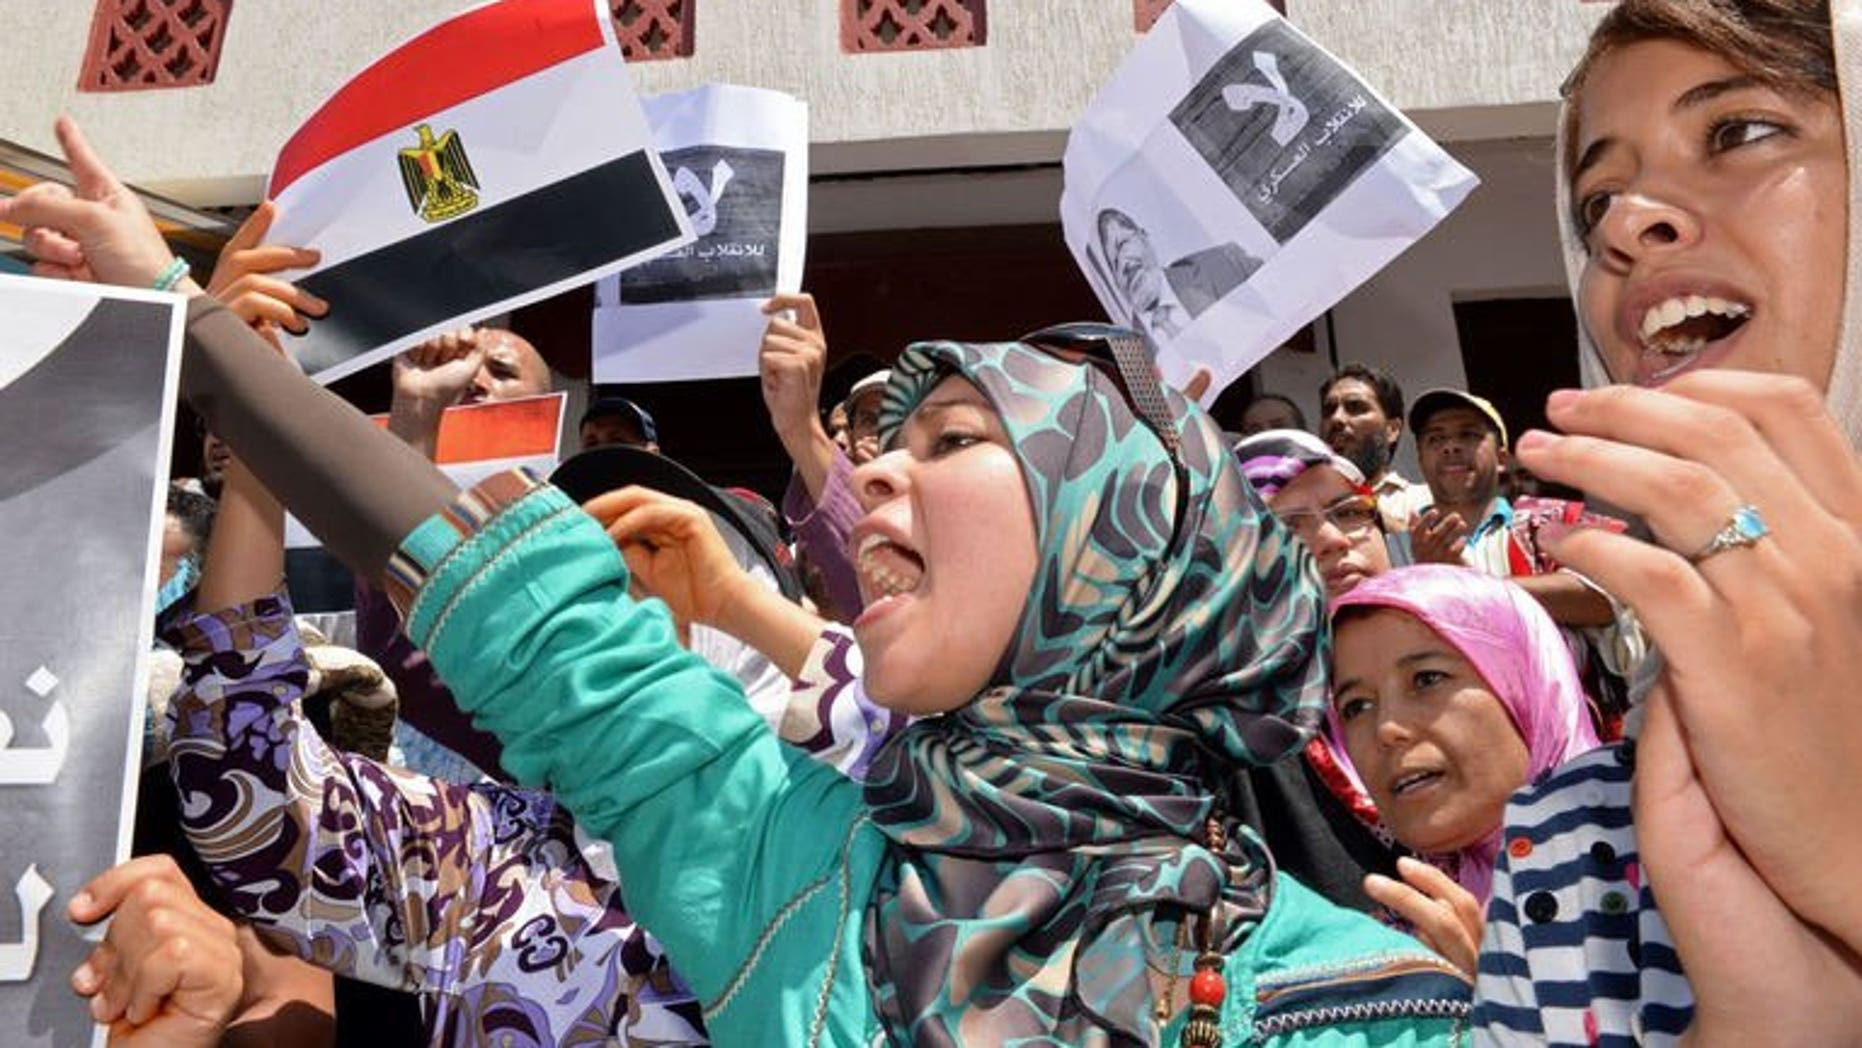 Moroccan protestors hold Egyptian flags during a rally in Rabat against the violence in Egypt on August 16, 2013. Around 10,000 people took part in a demonstration in the Moroccan capital on Sunday in support of Islamists in Egypt locked in a deadly showdown with security forces.